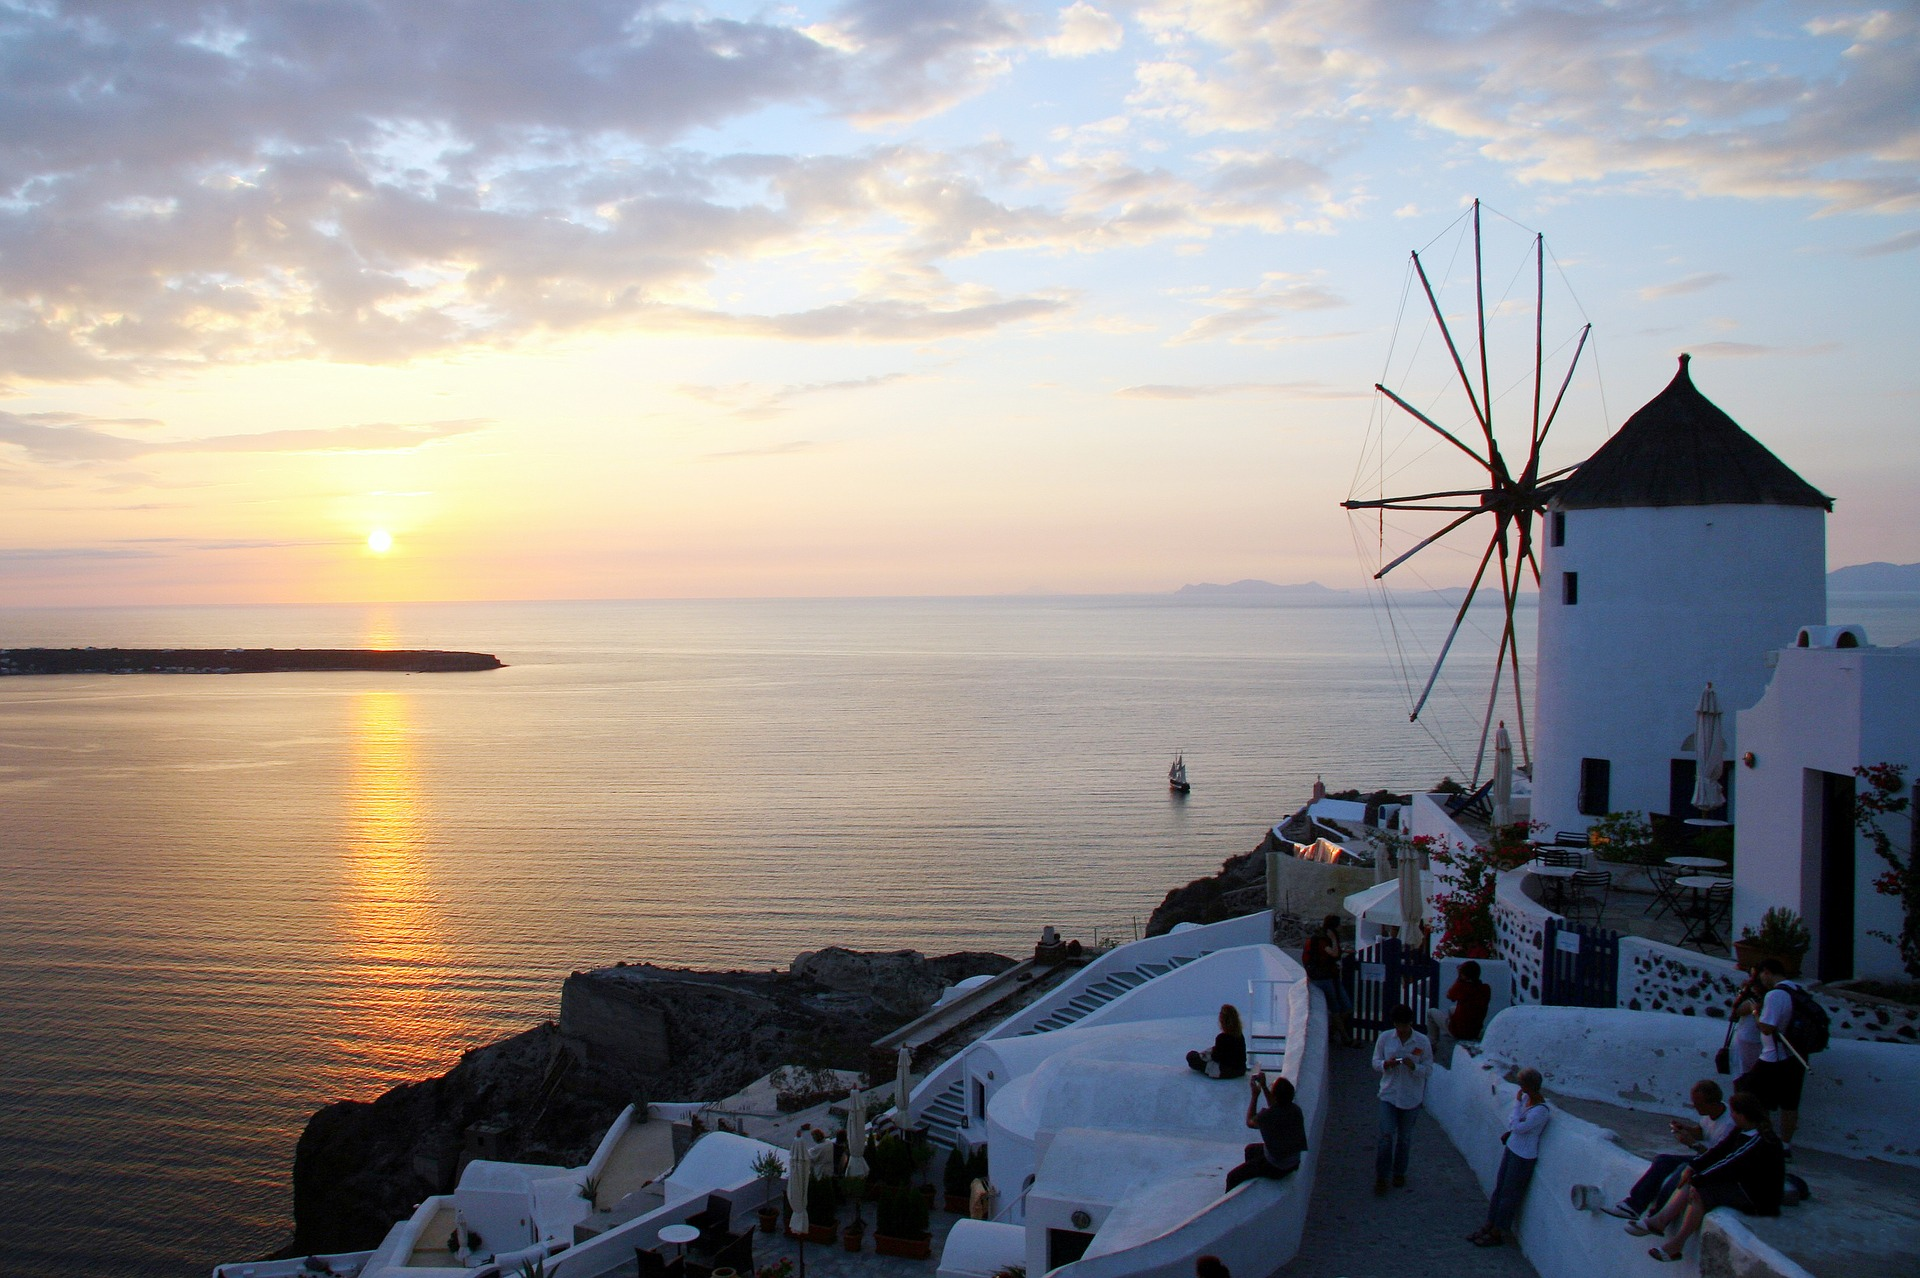 santorini 1704844 1920 Your Useful Guide to Exploring the Ancient Wonders of Greece